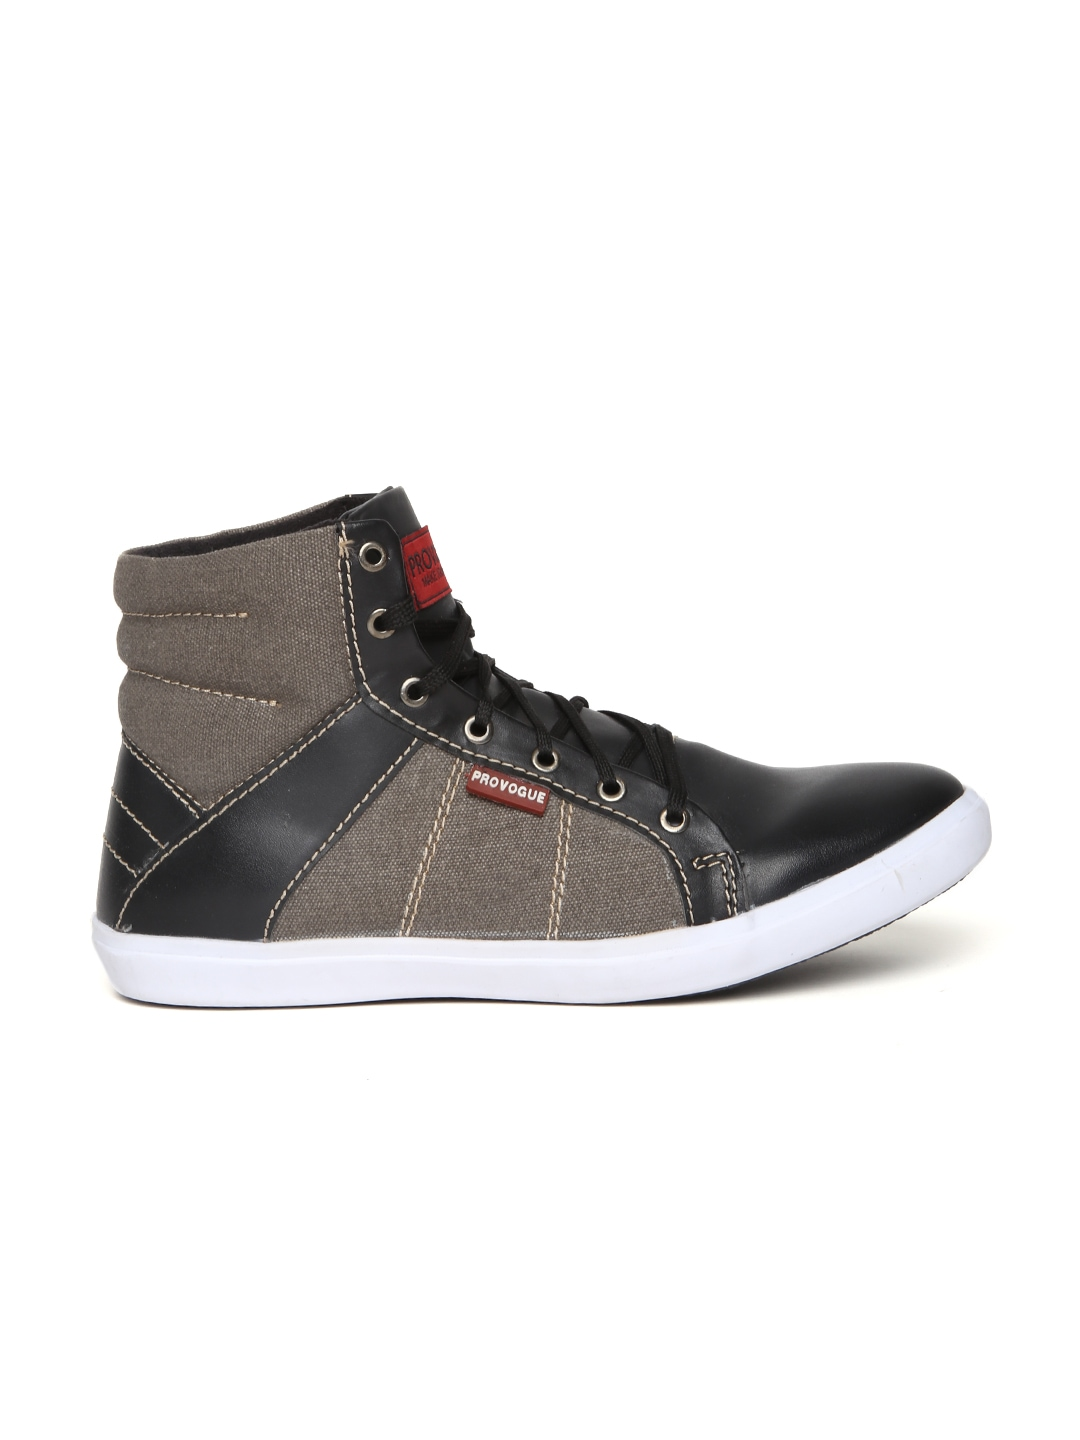 myntra provogue black taupe casual shoes 814762